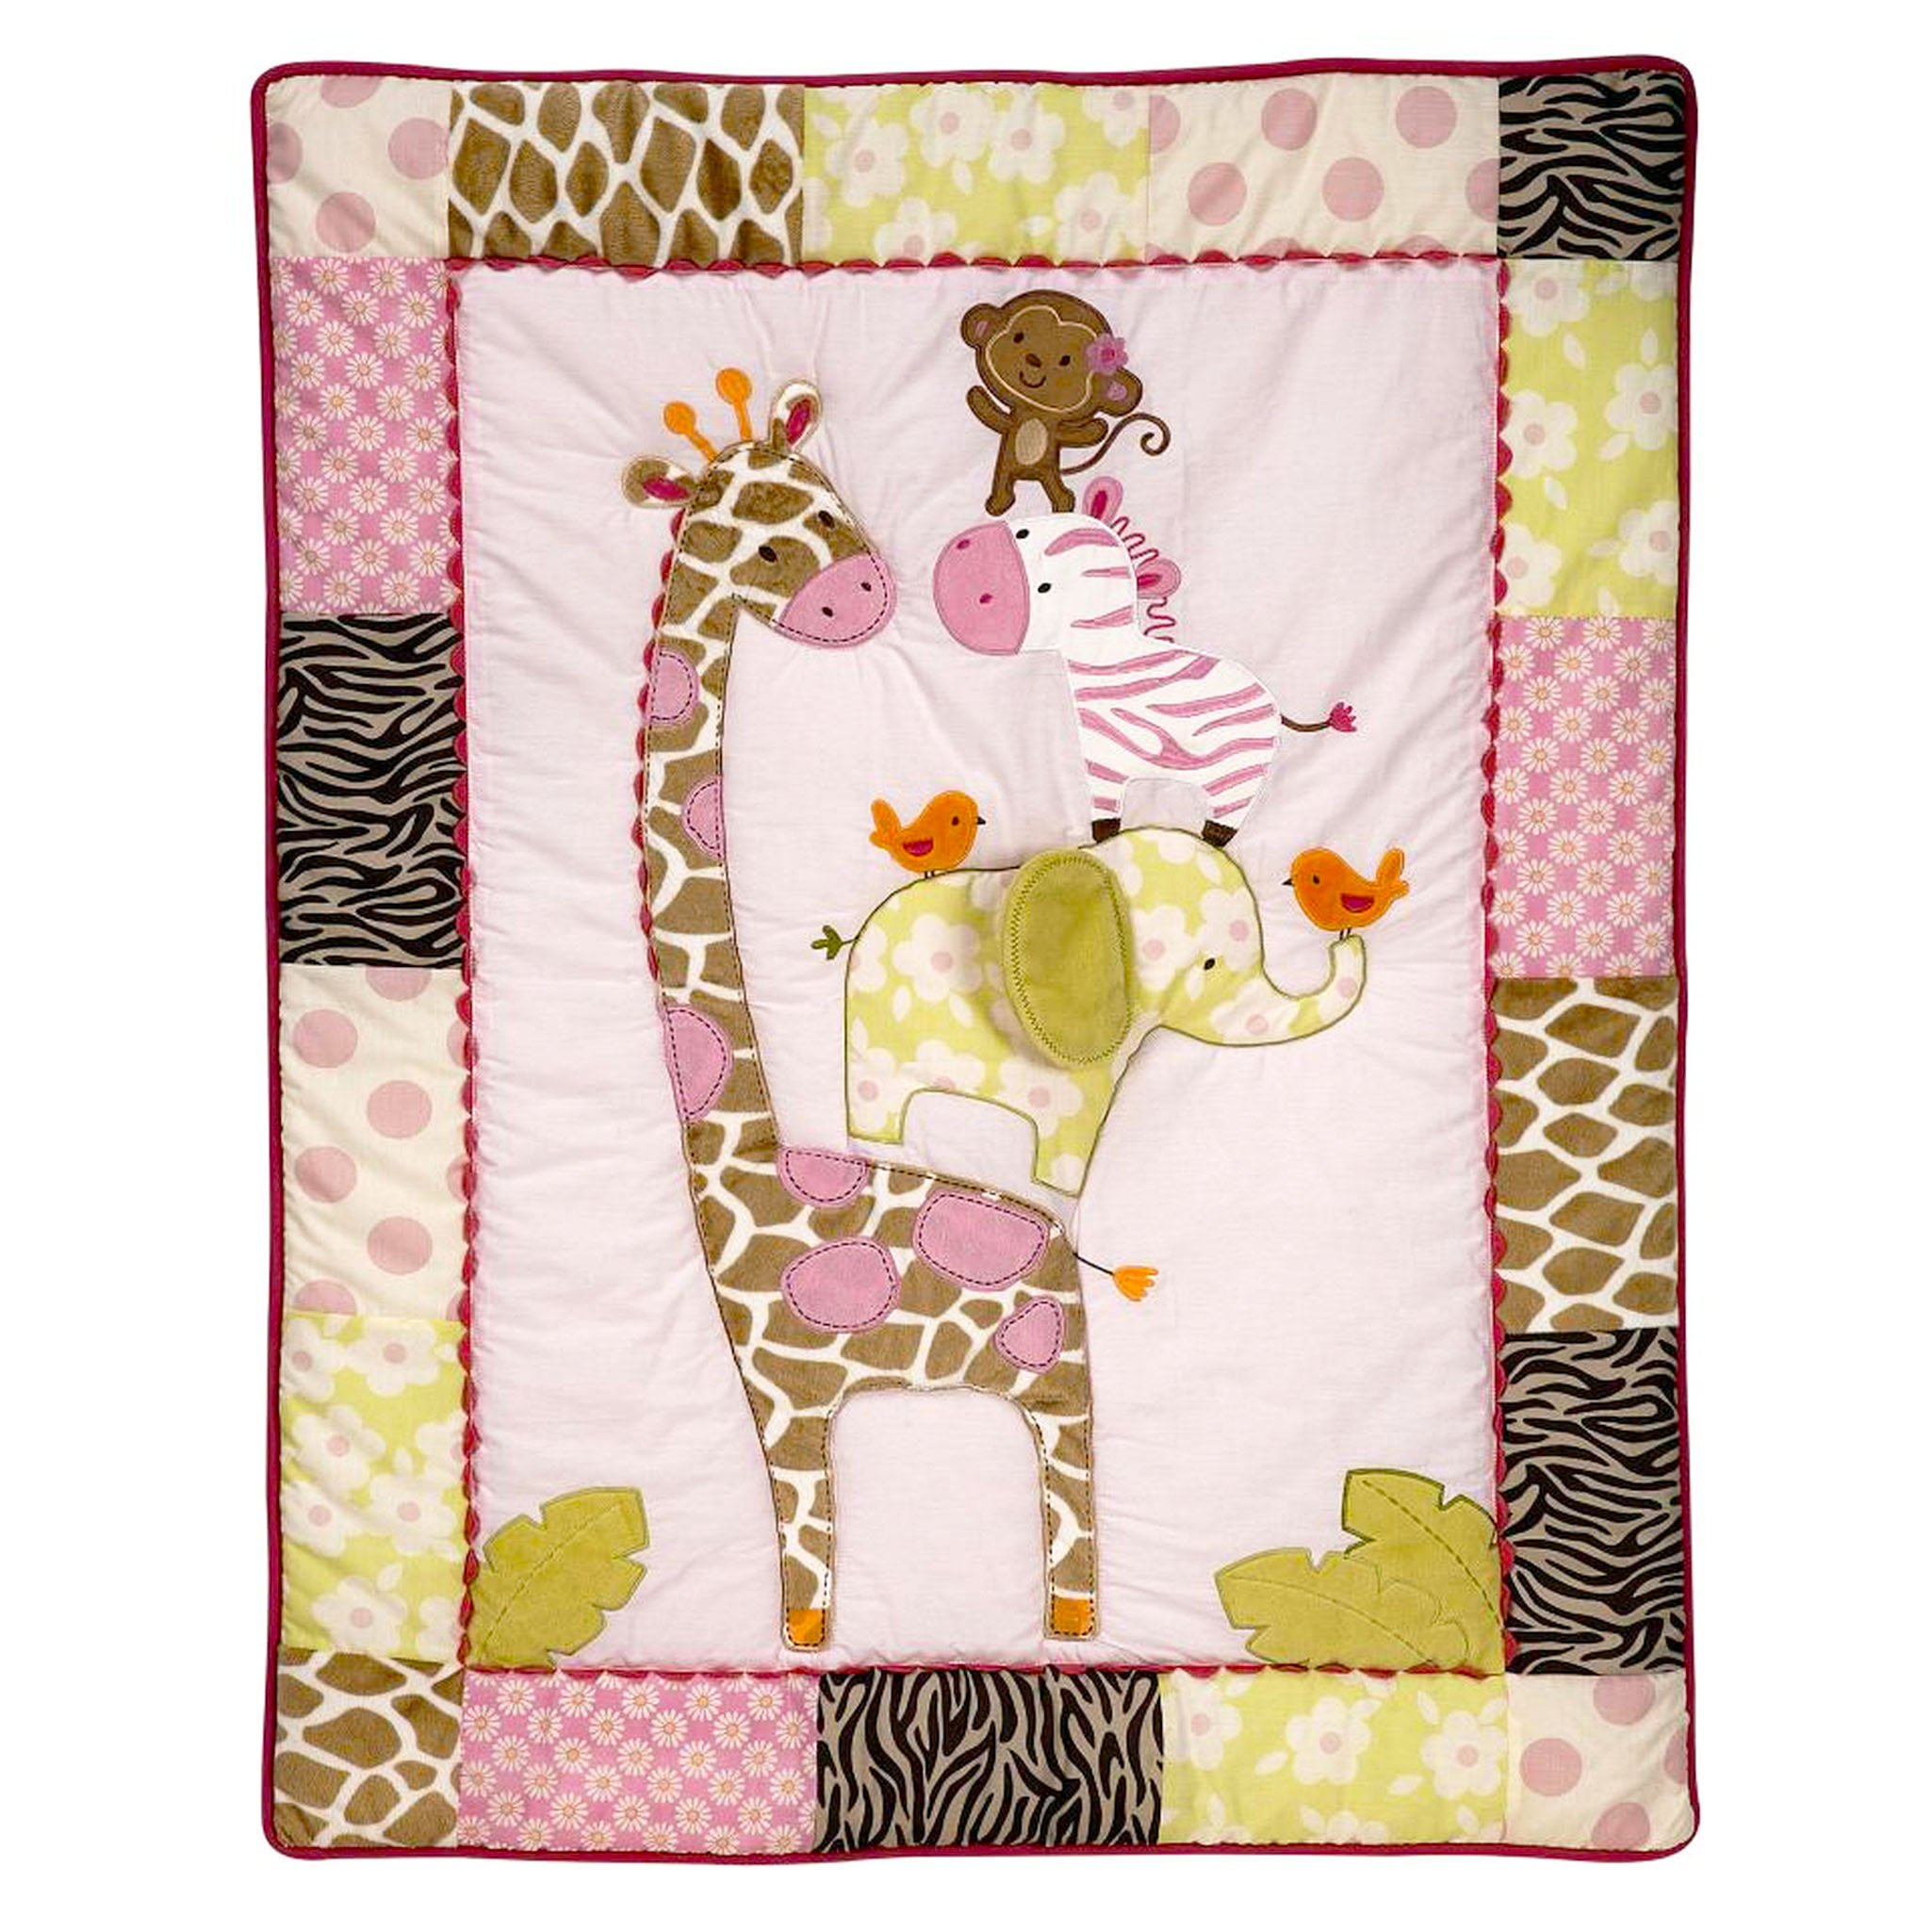 Carter's Jungle Jill Baby Applique Luxury (Crib Quilt/Comforter Only) Pink by Carter's